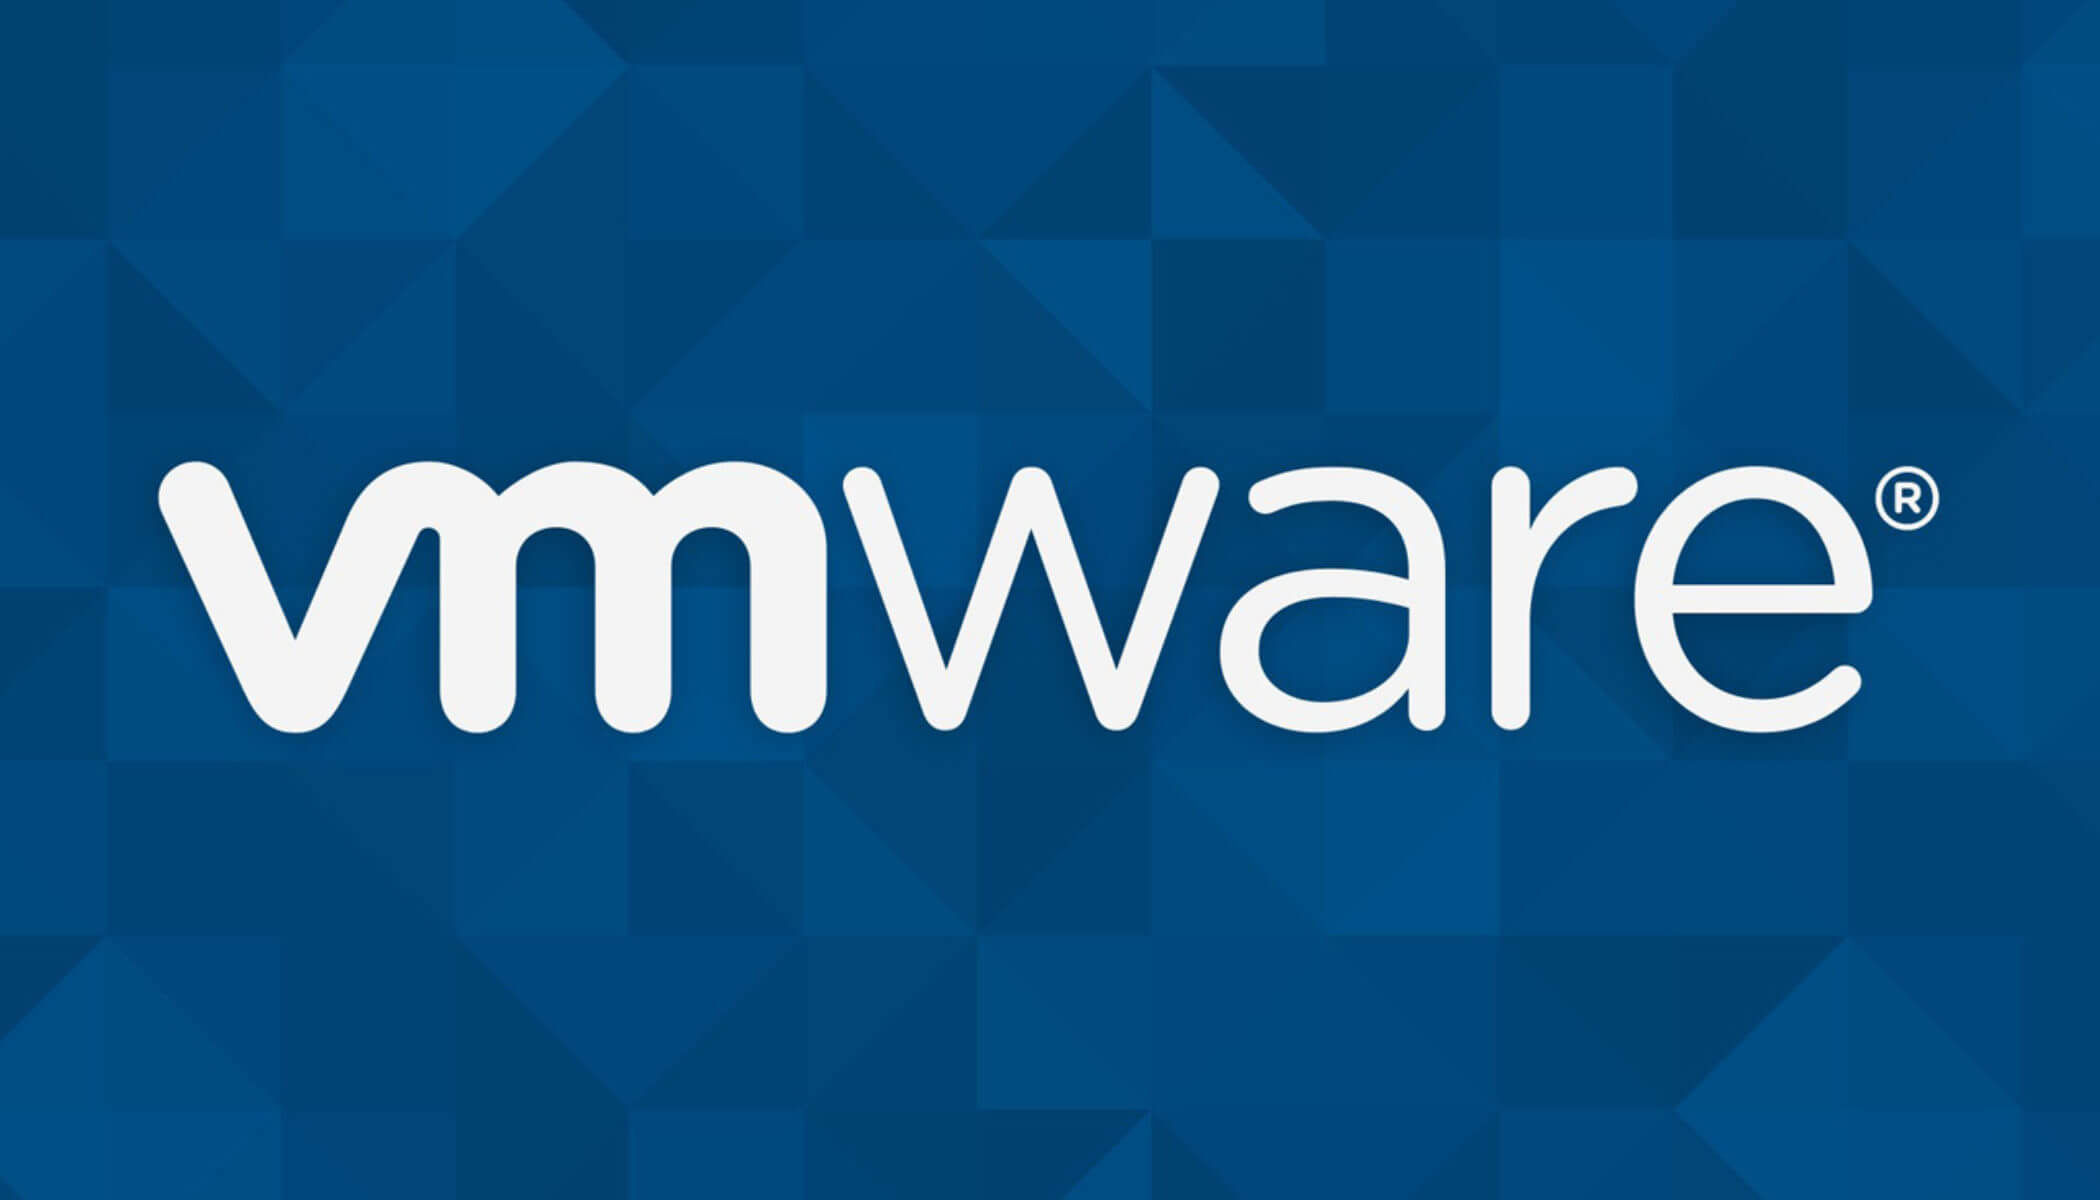 VMware-featured-2100x1200.jpg